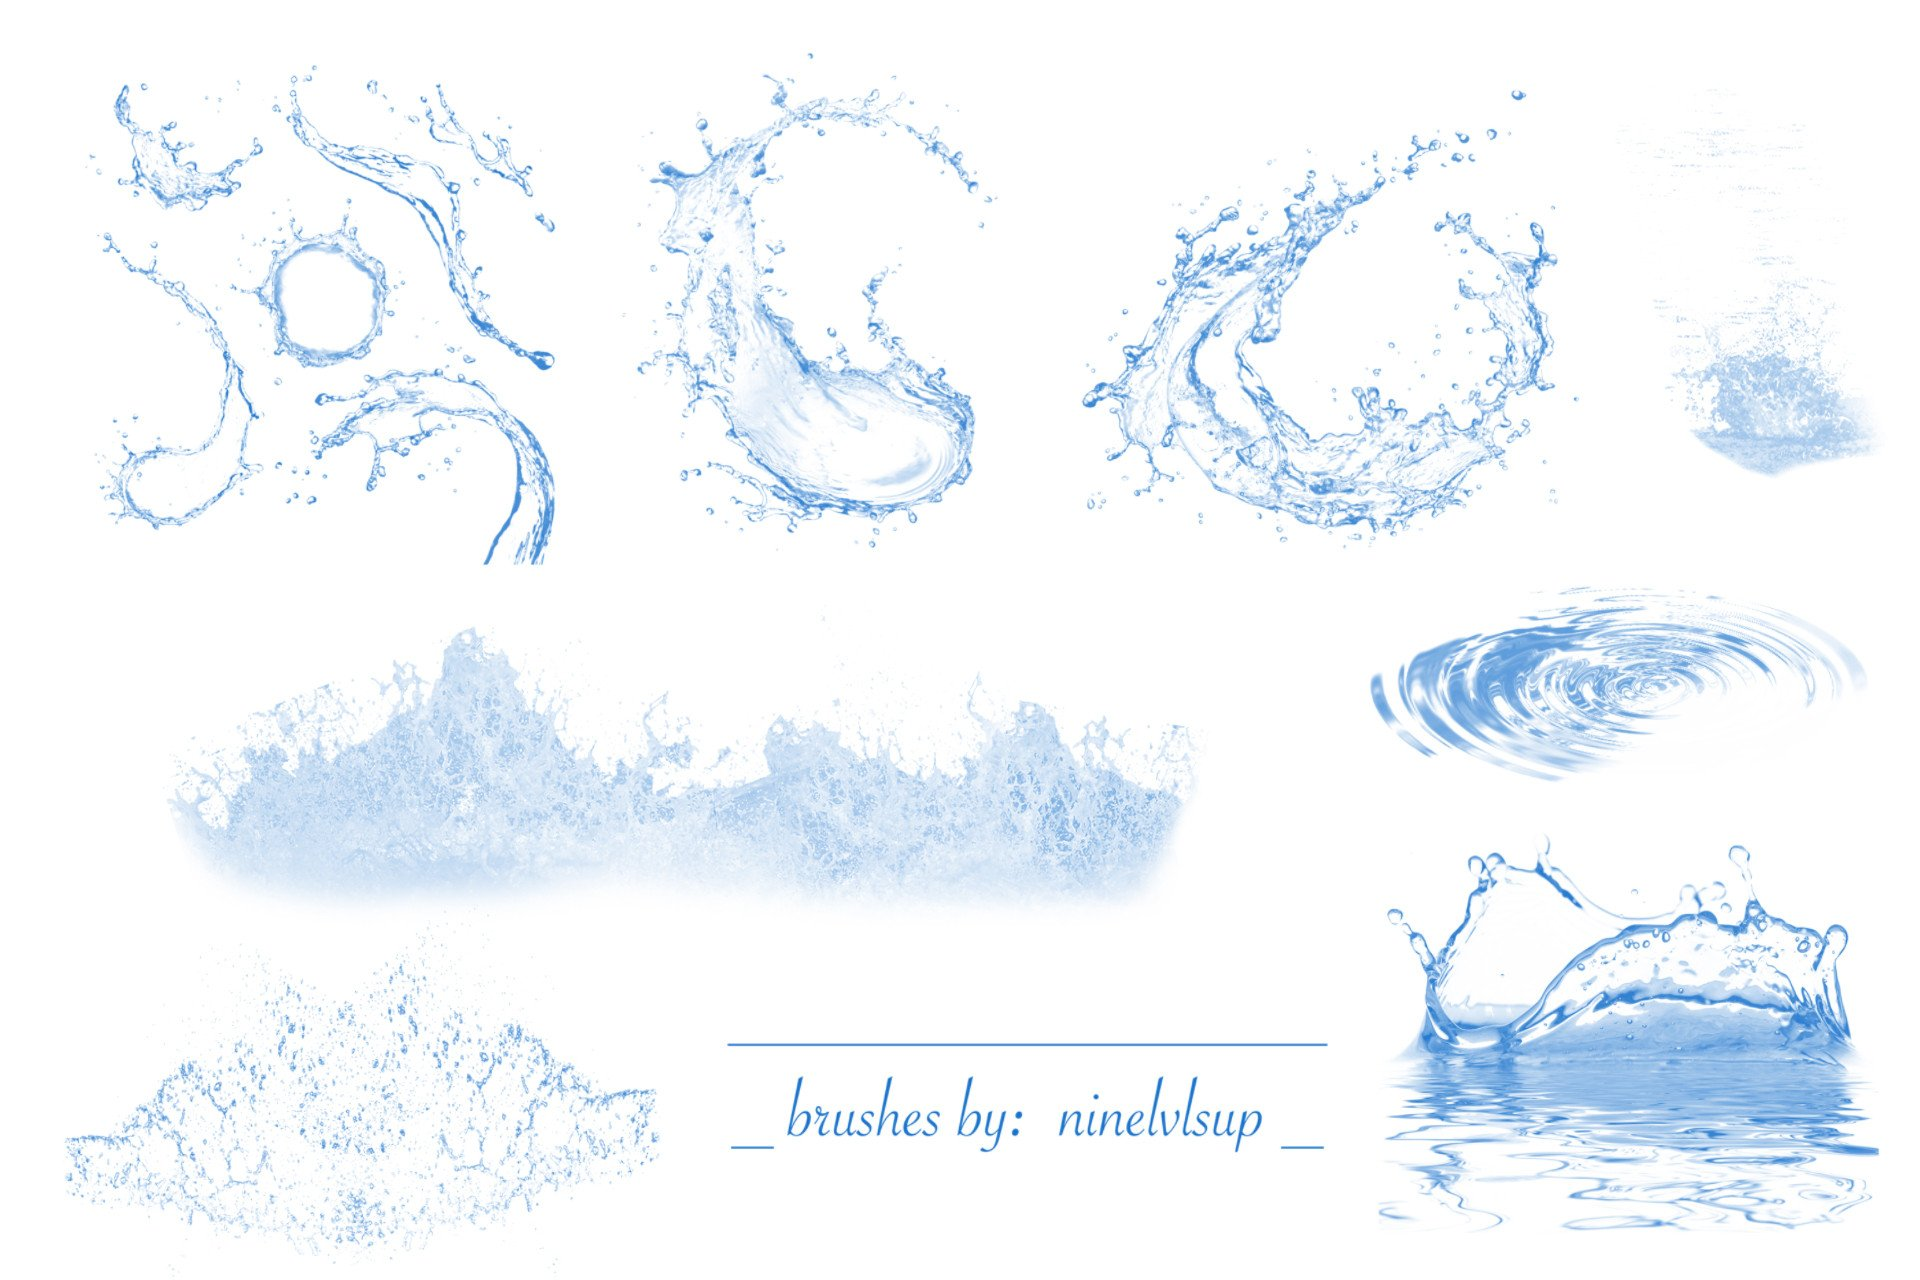 Water Splash Brush Photoshop Water Splash Brushes by Ninelvlsup On Deviantart